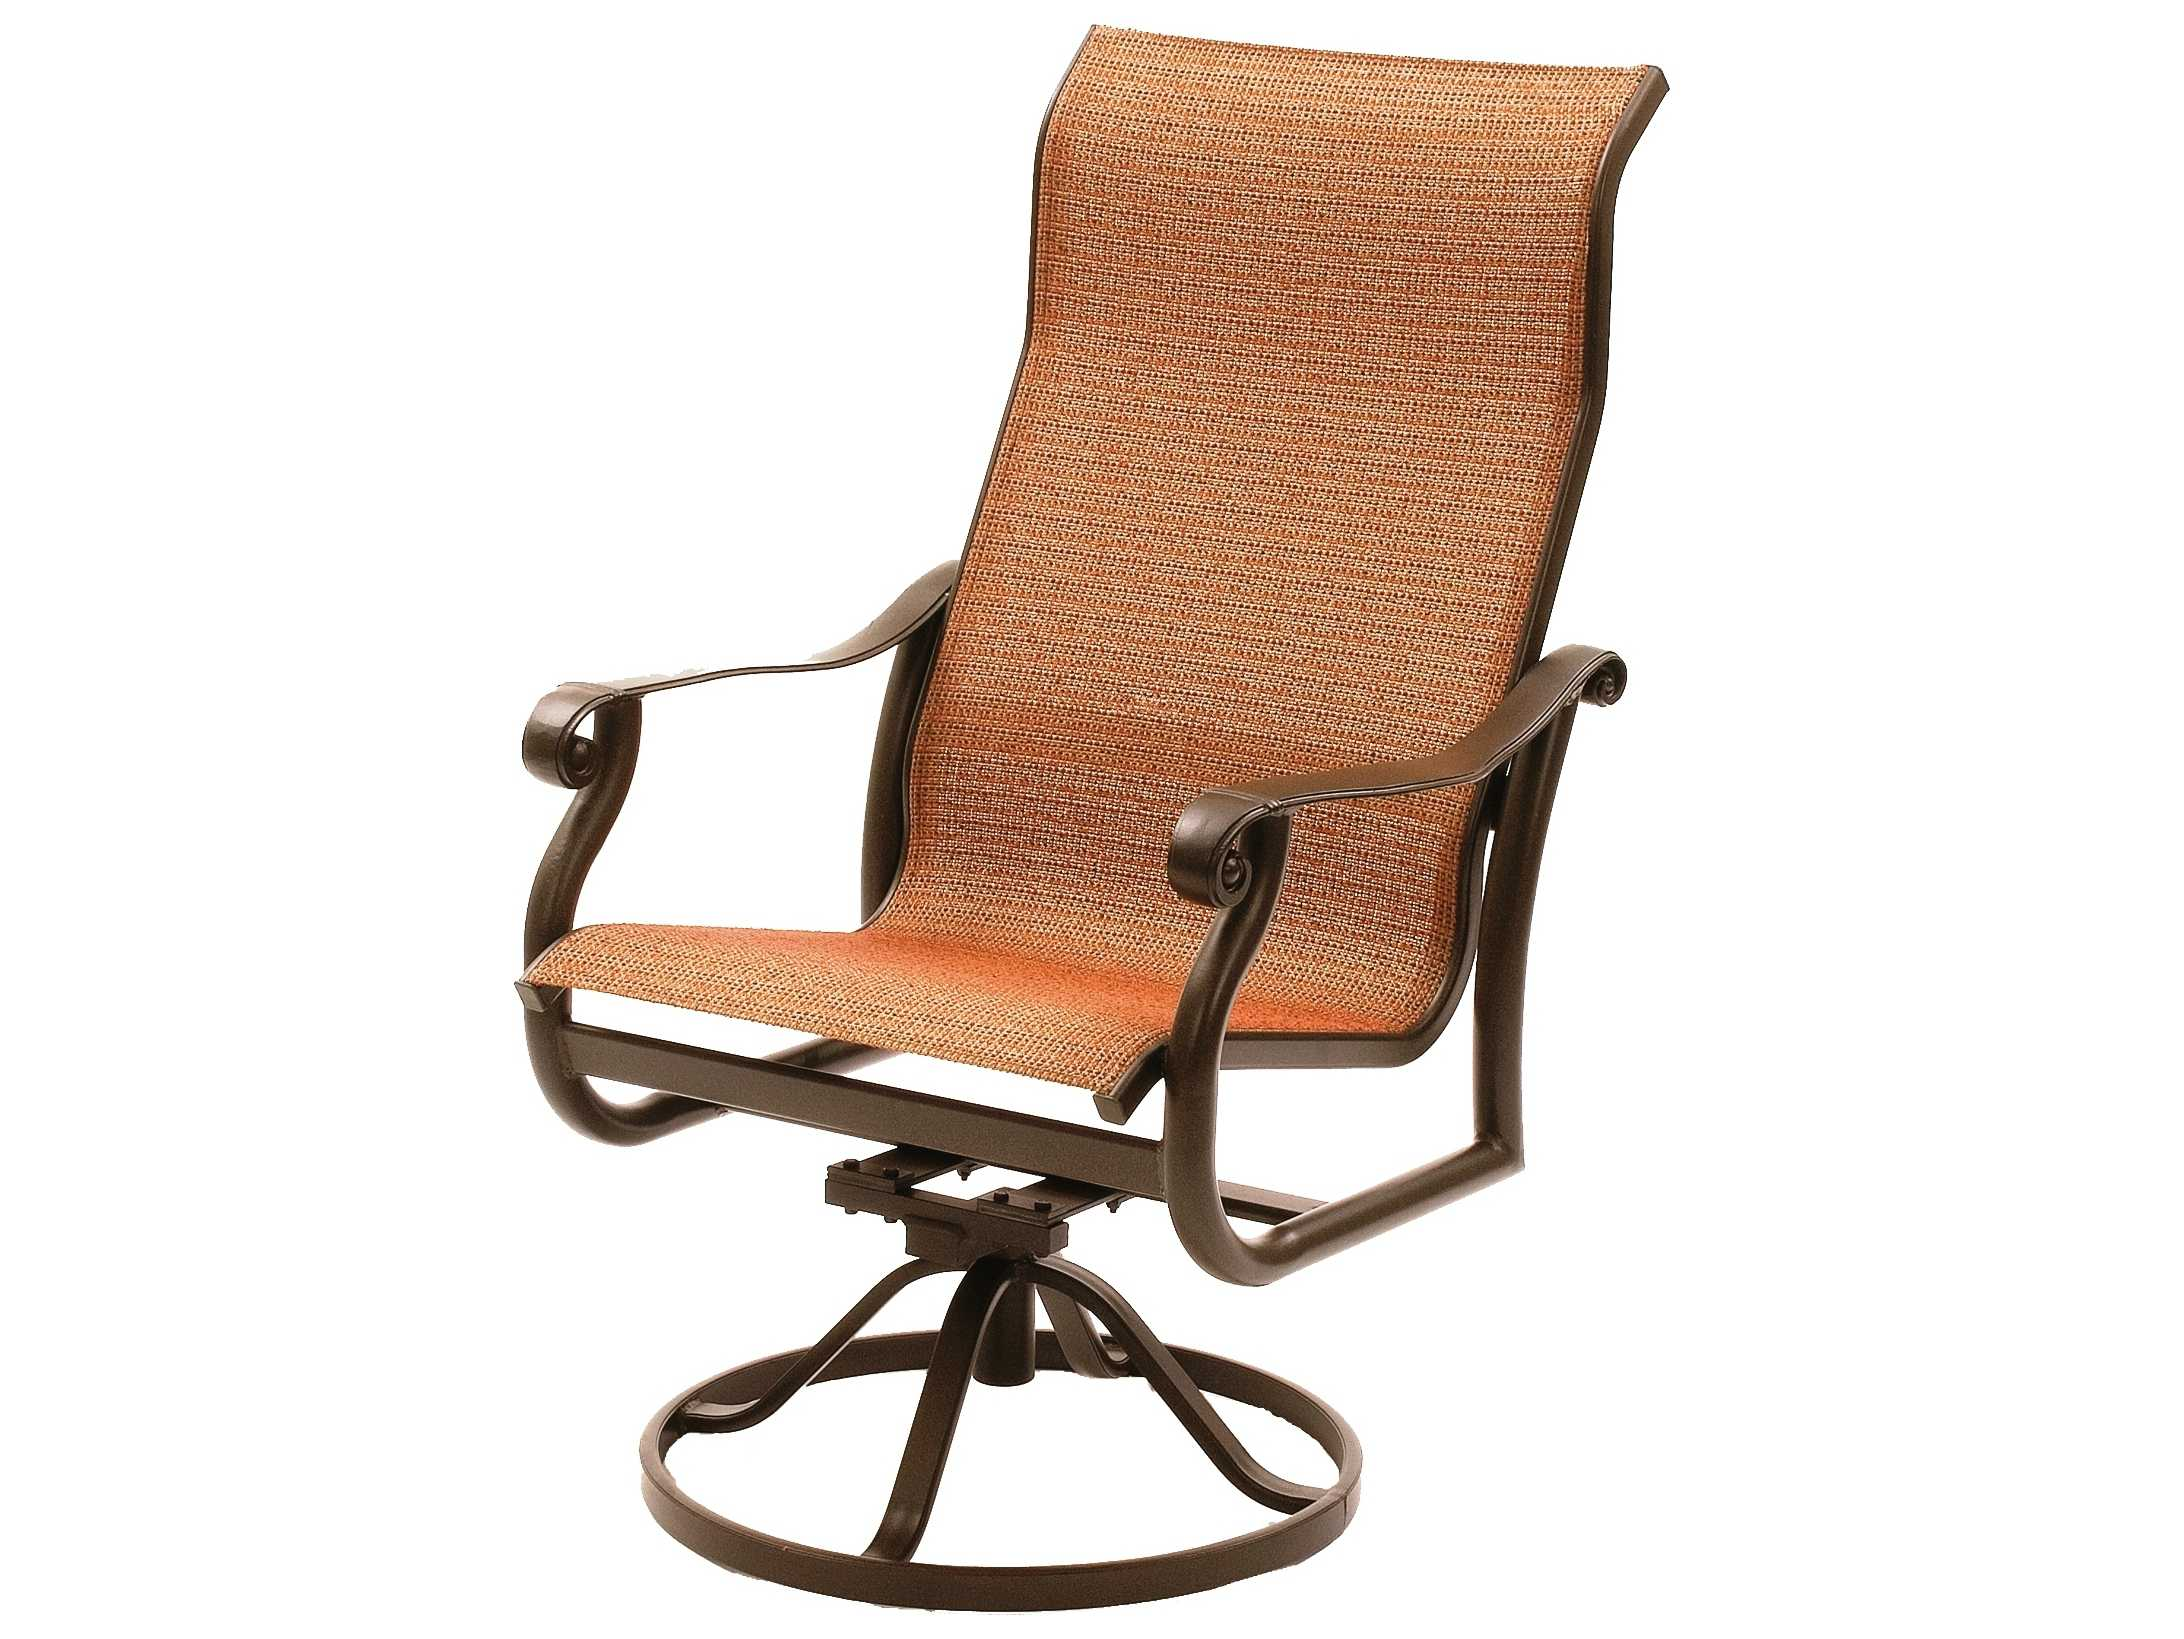 sling motion patio chairs steel chair for tent house suncoast rendezvous cast aluminum arm swivel rocker